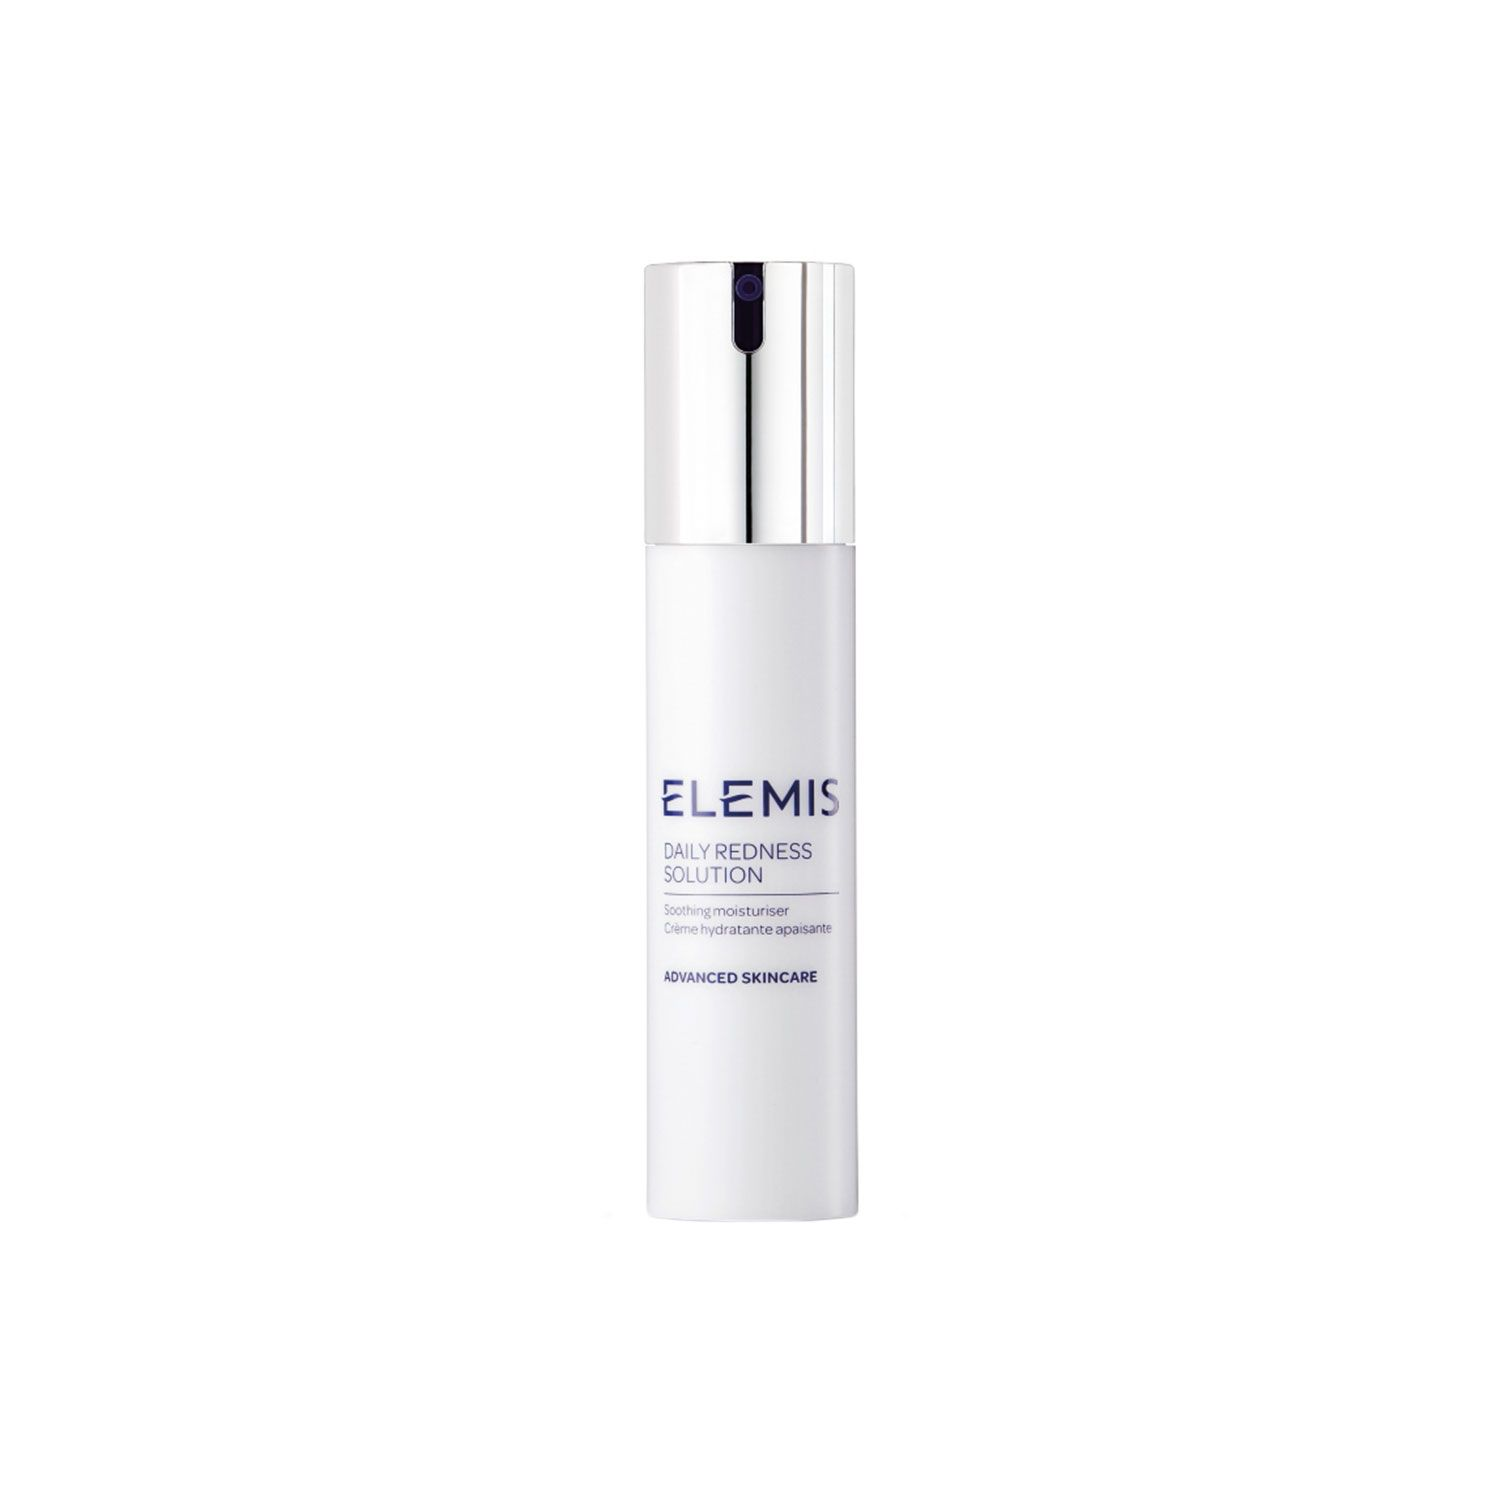 Elemis Daily Redness Solution